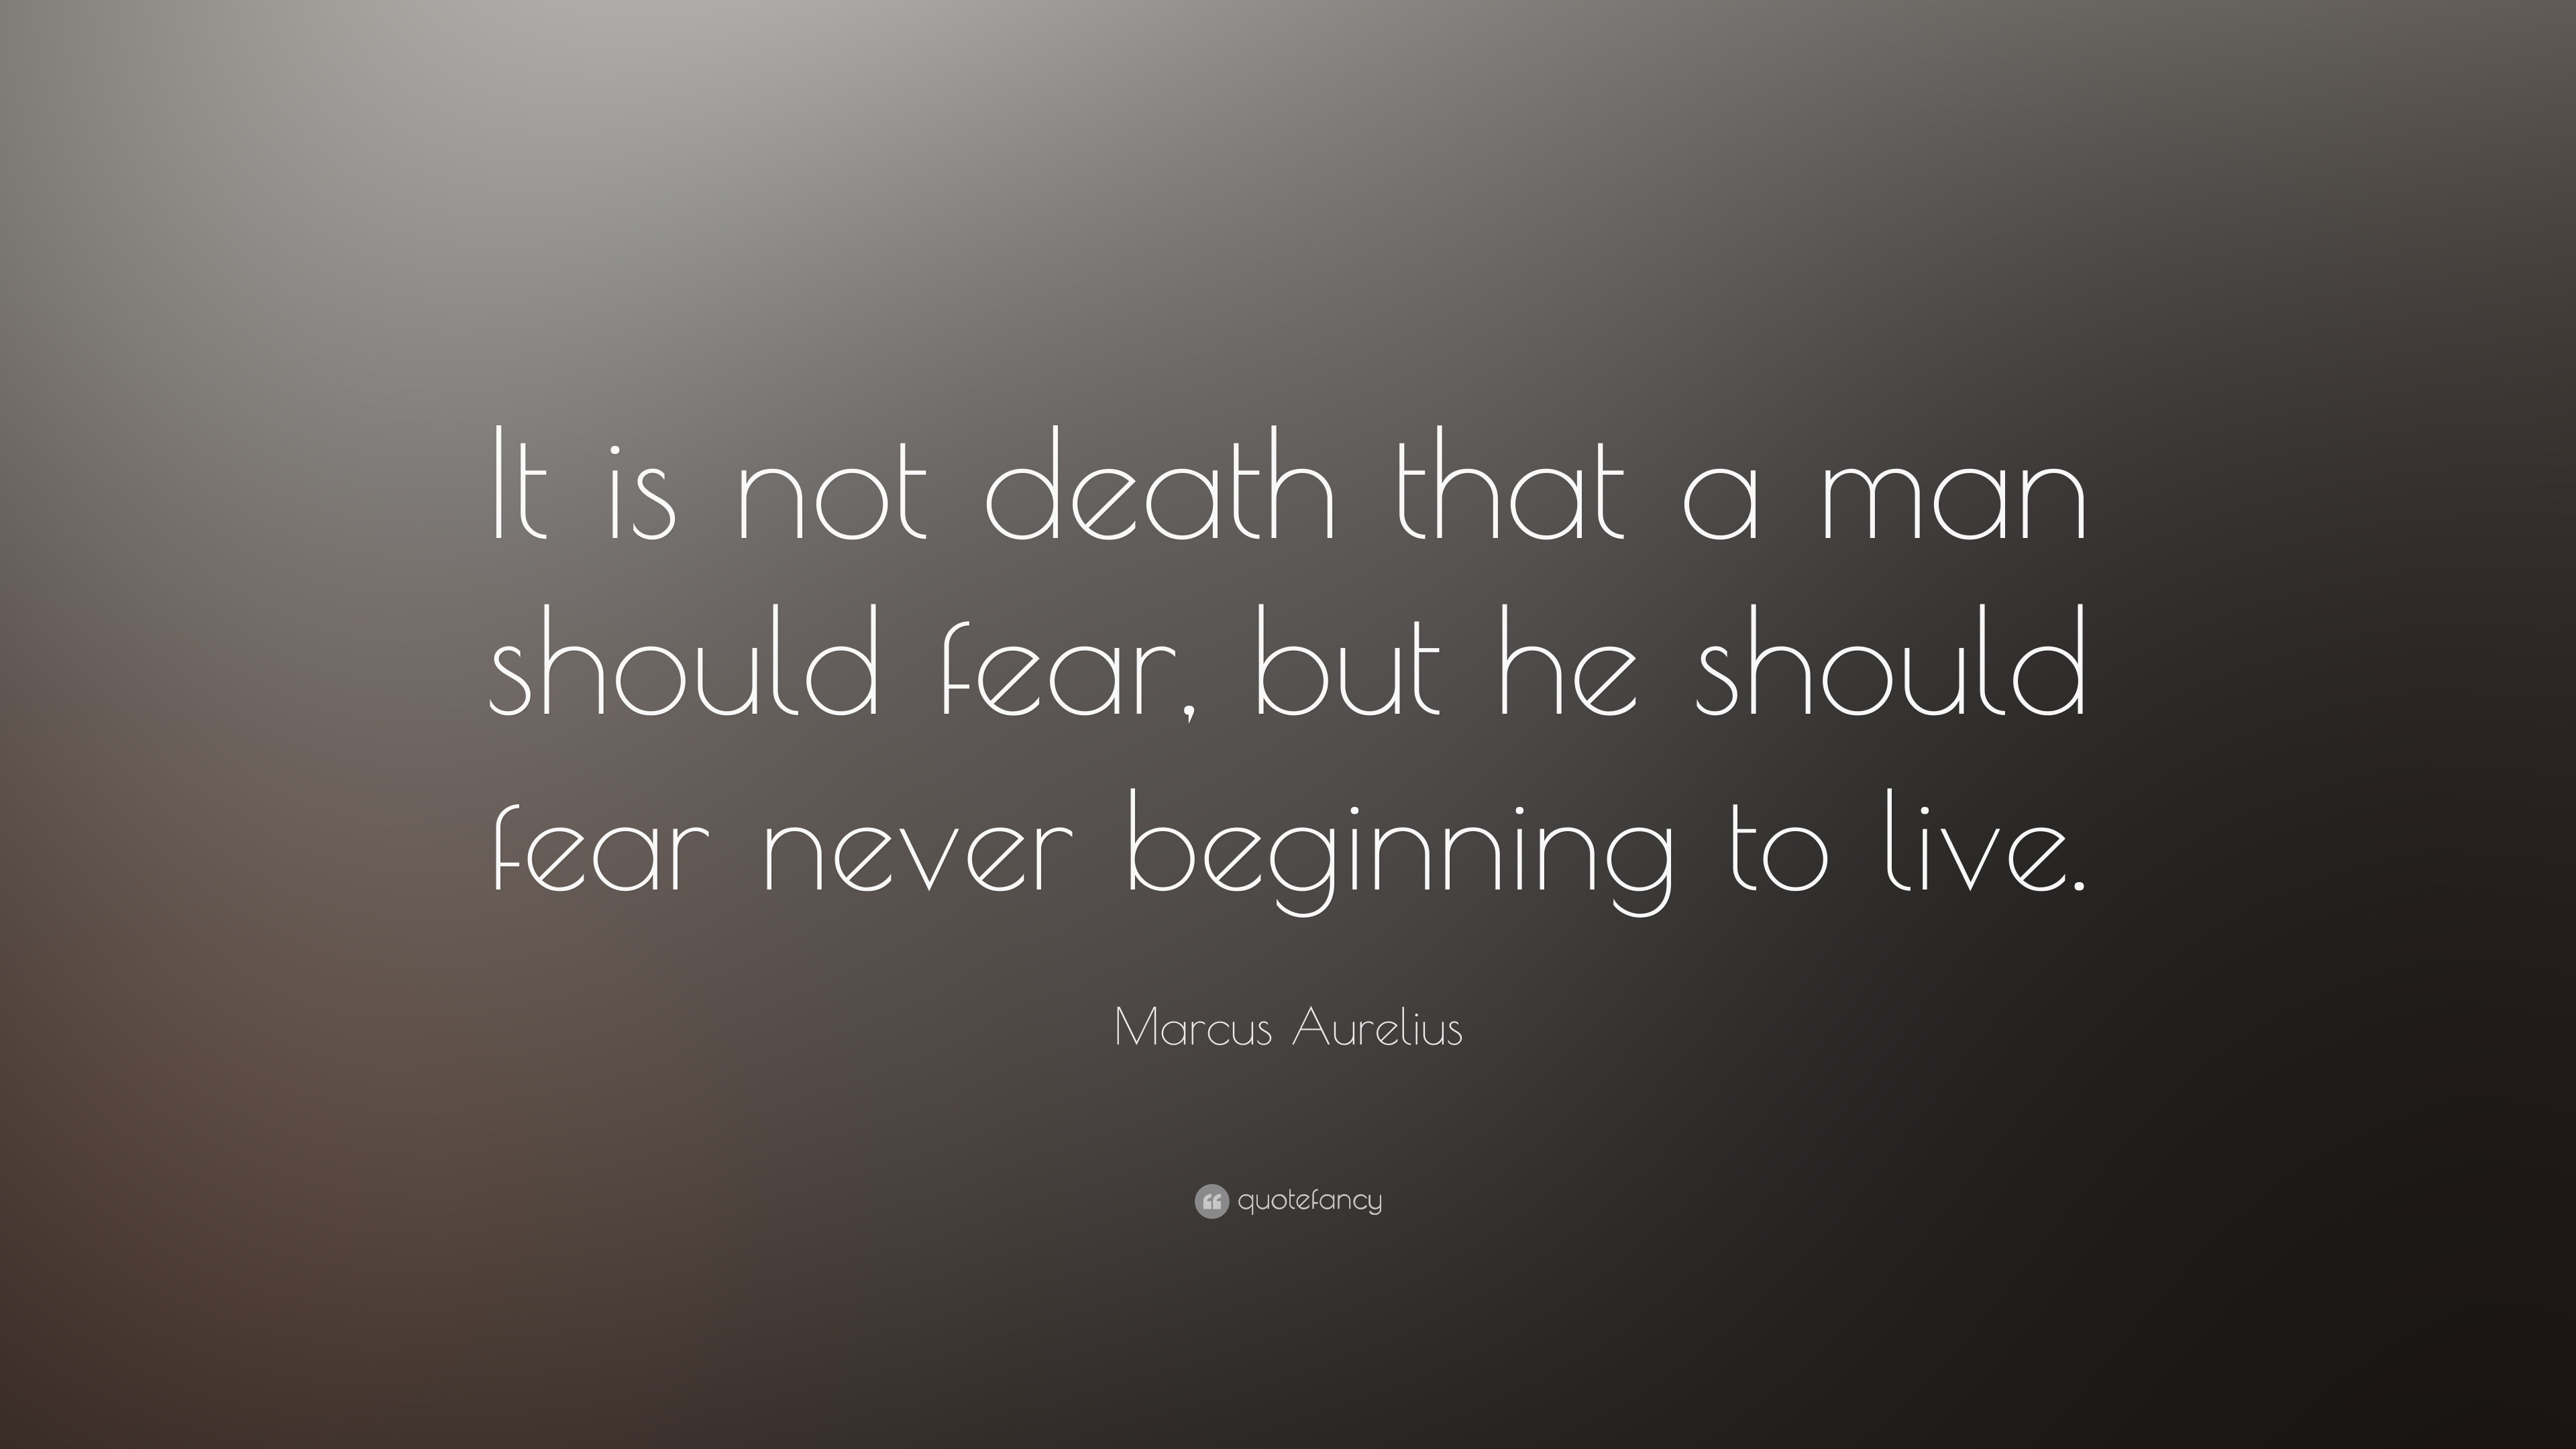 Motivational Quotes On Attitude Wallpapers Marcus Aurelius Quote It Is Not Death That A Man Should